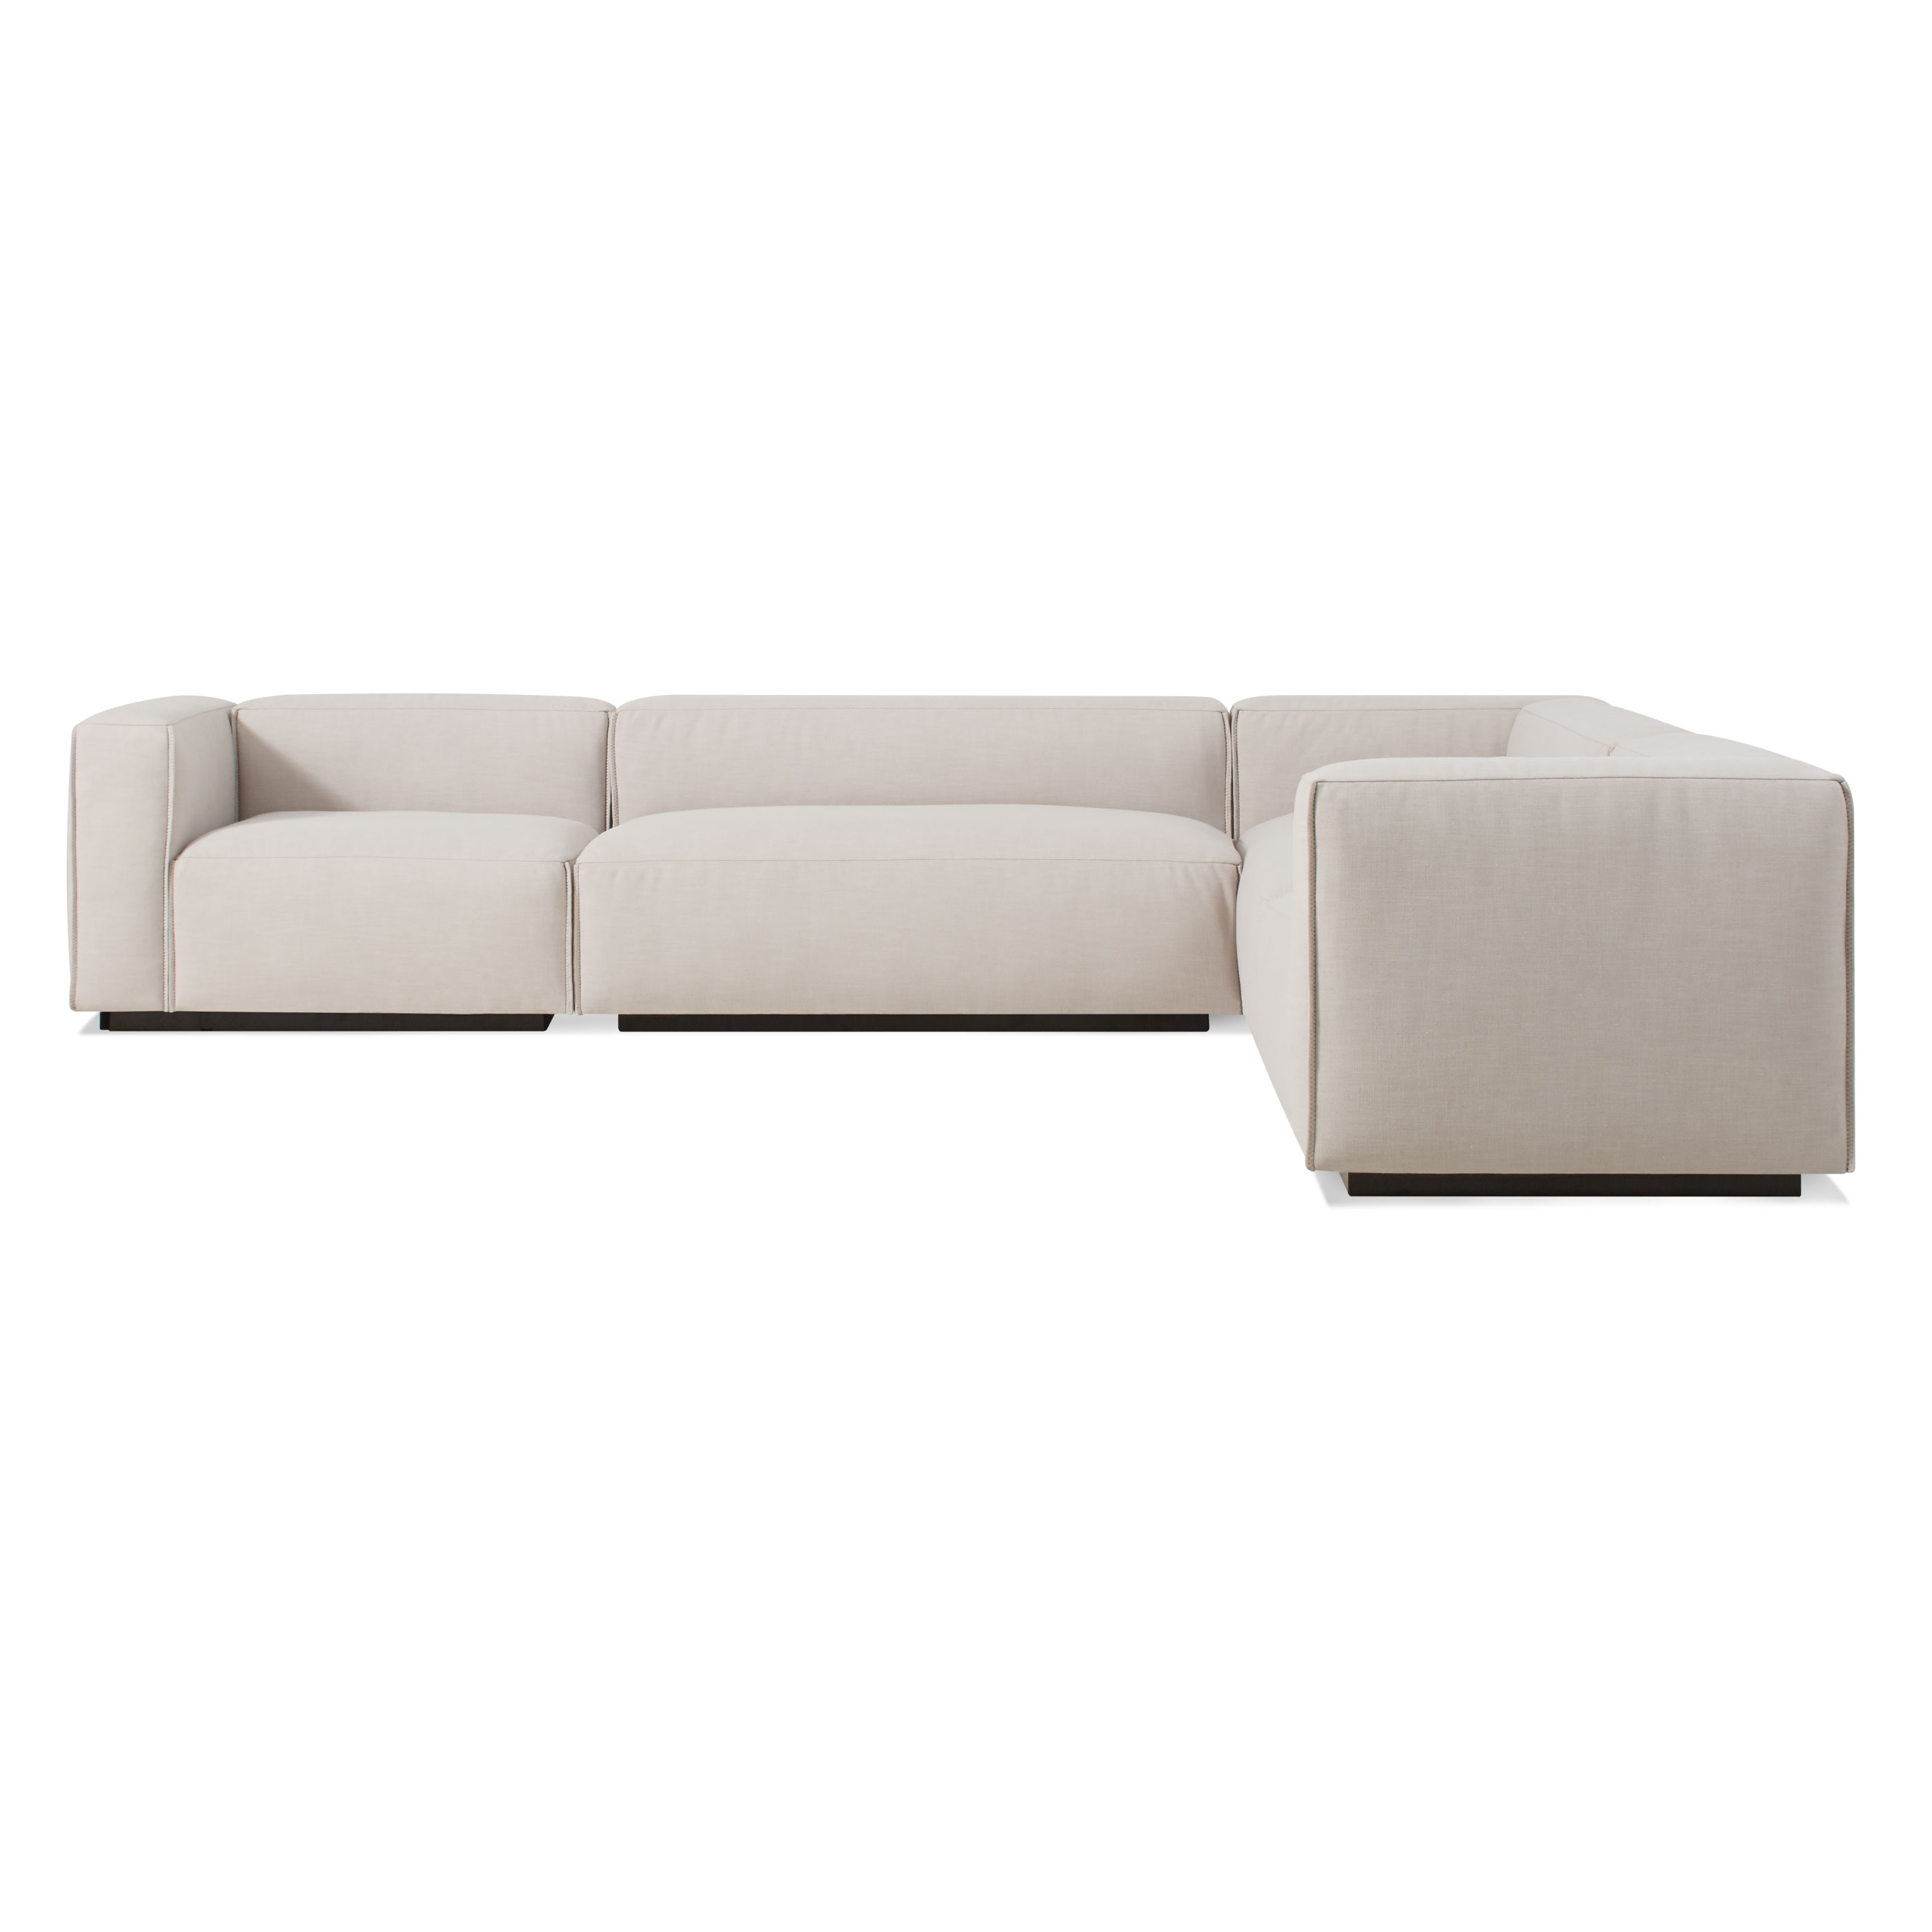 Cleon Large Modern Sectional Sofa (View 4 of 20)